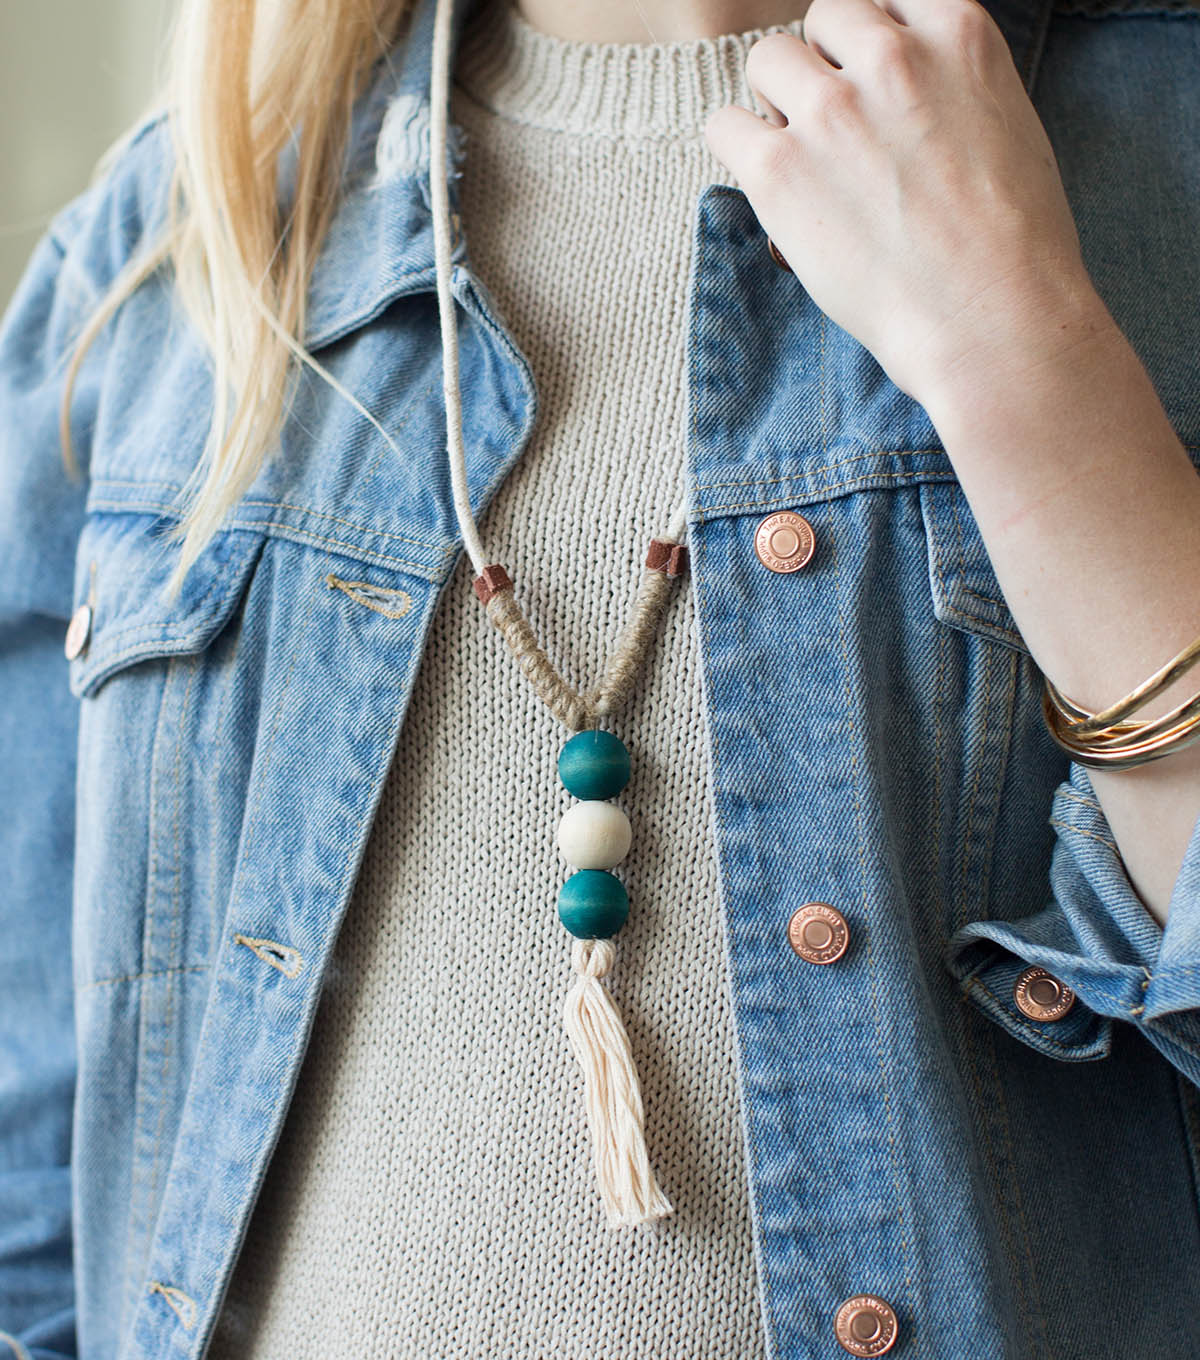 How To Make A Dyed Wood Bead Necklace   JOANN